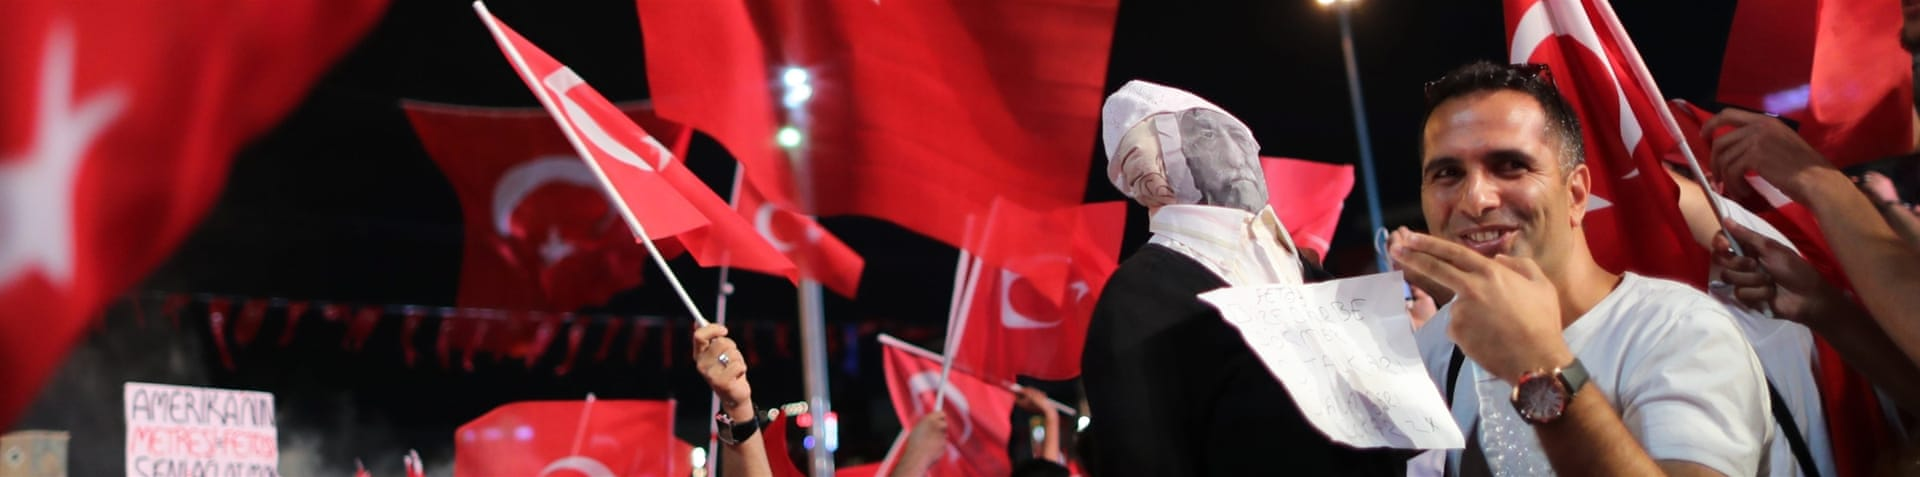 Gulen has been criticised by government supporters since the July 15 coup bid [Umit Bektas/Reuters]